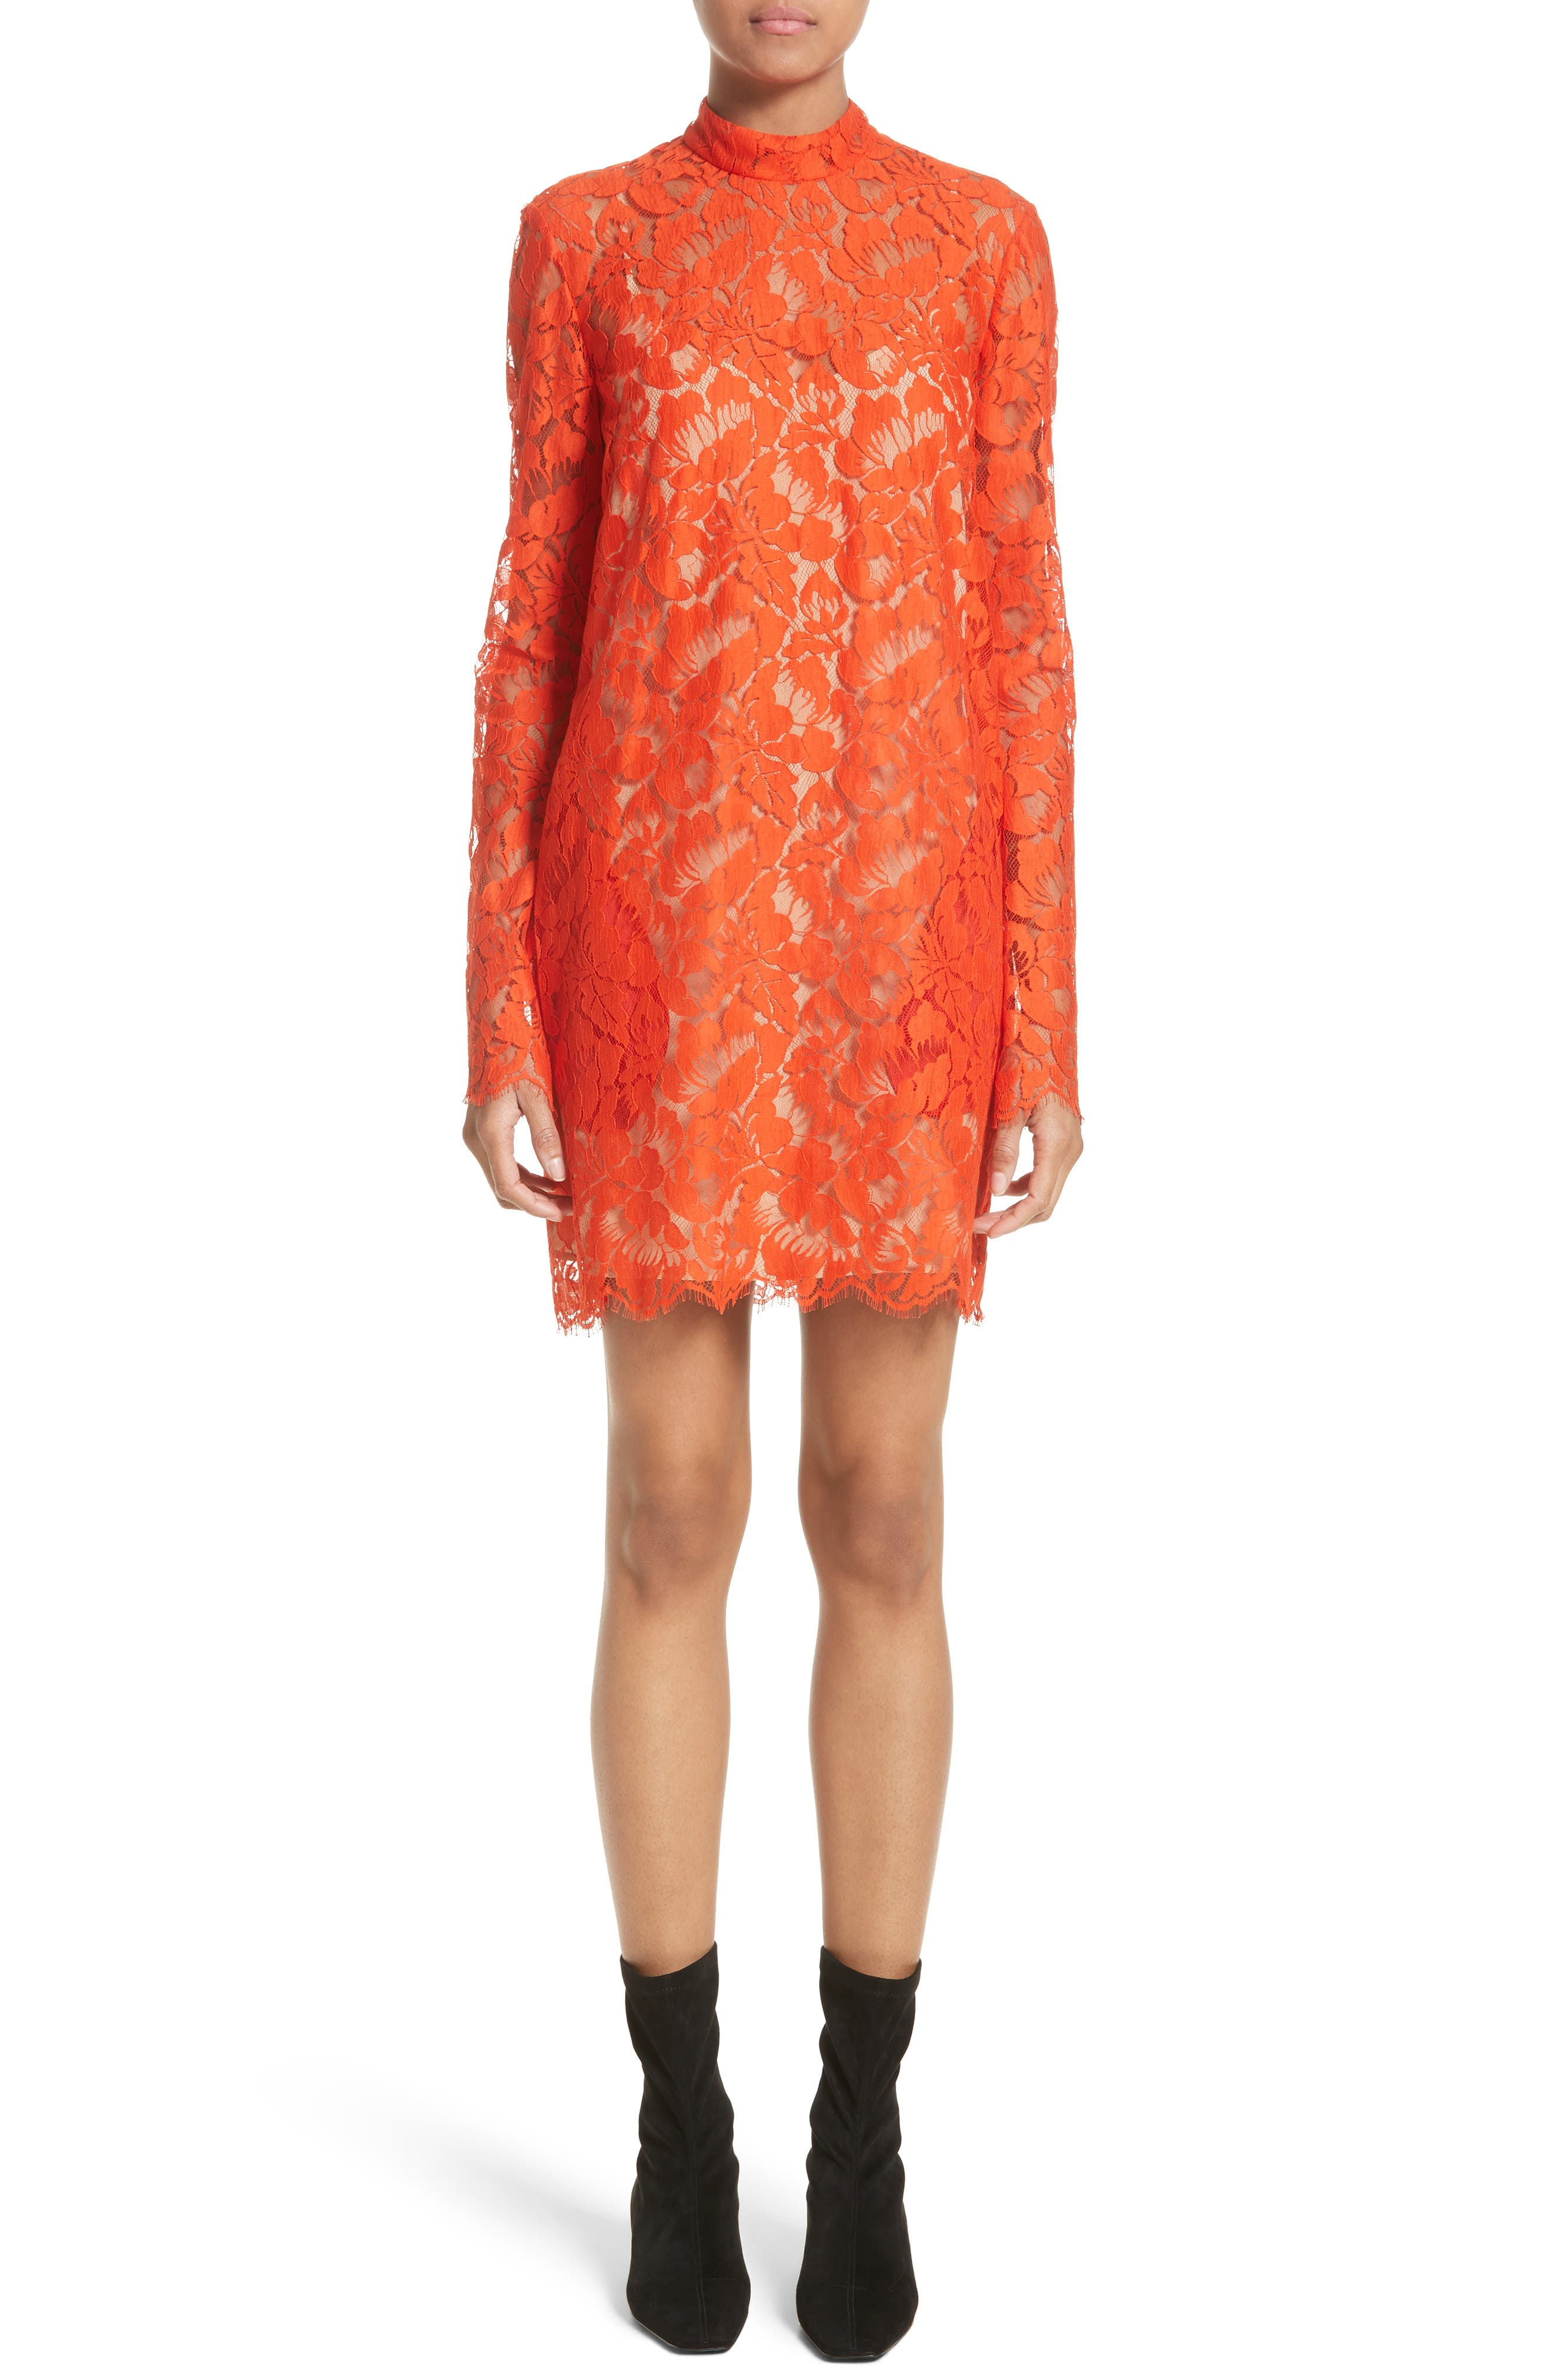 Stella McCartney Cayla Lace Minidress